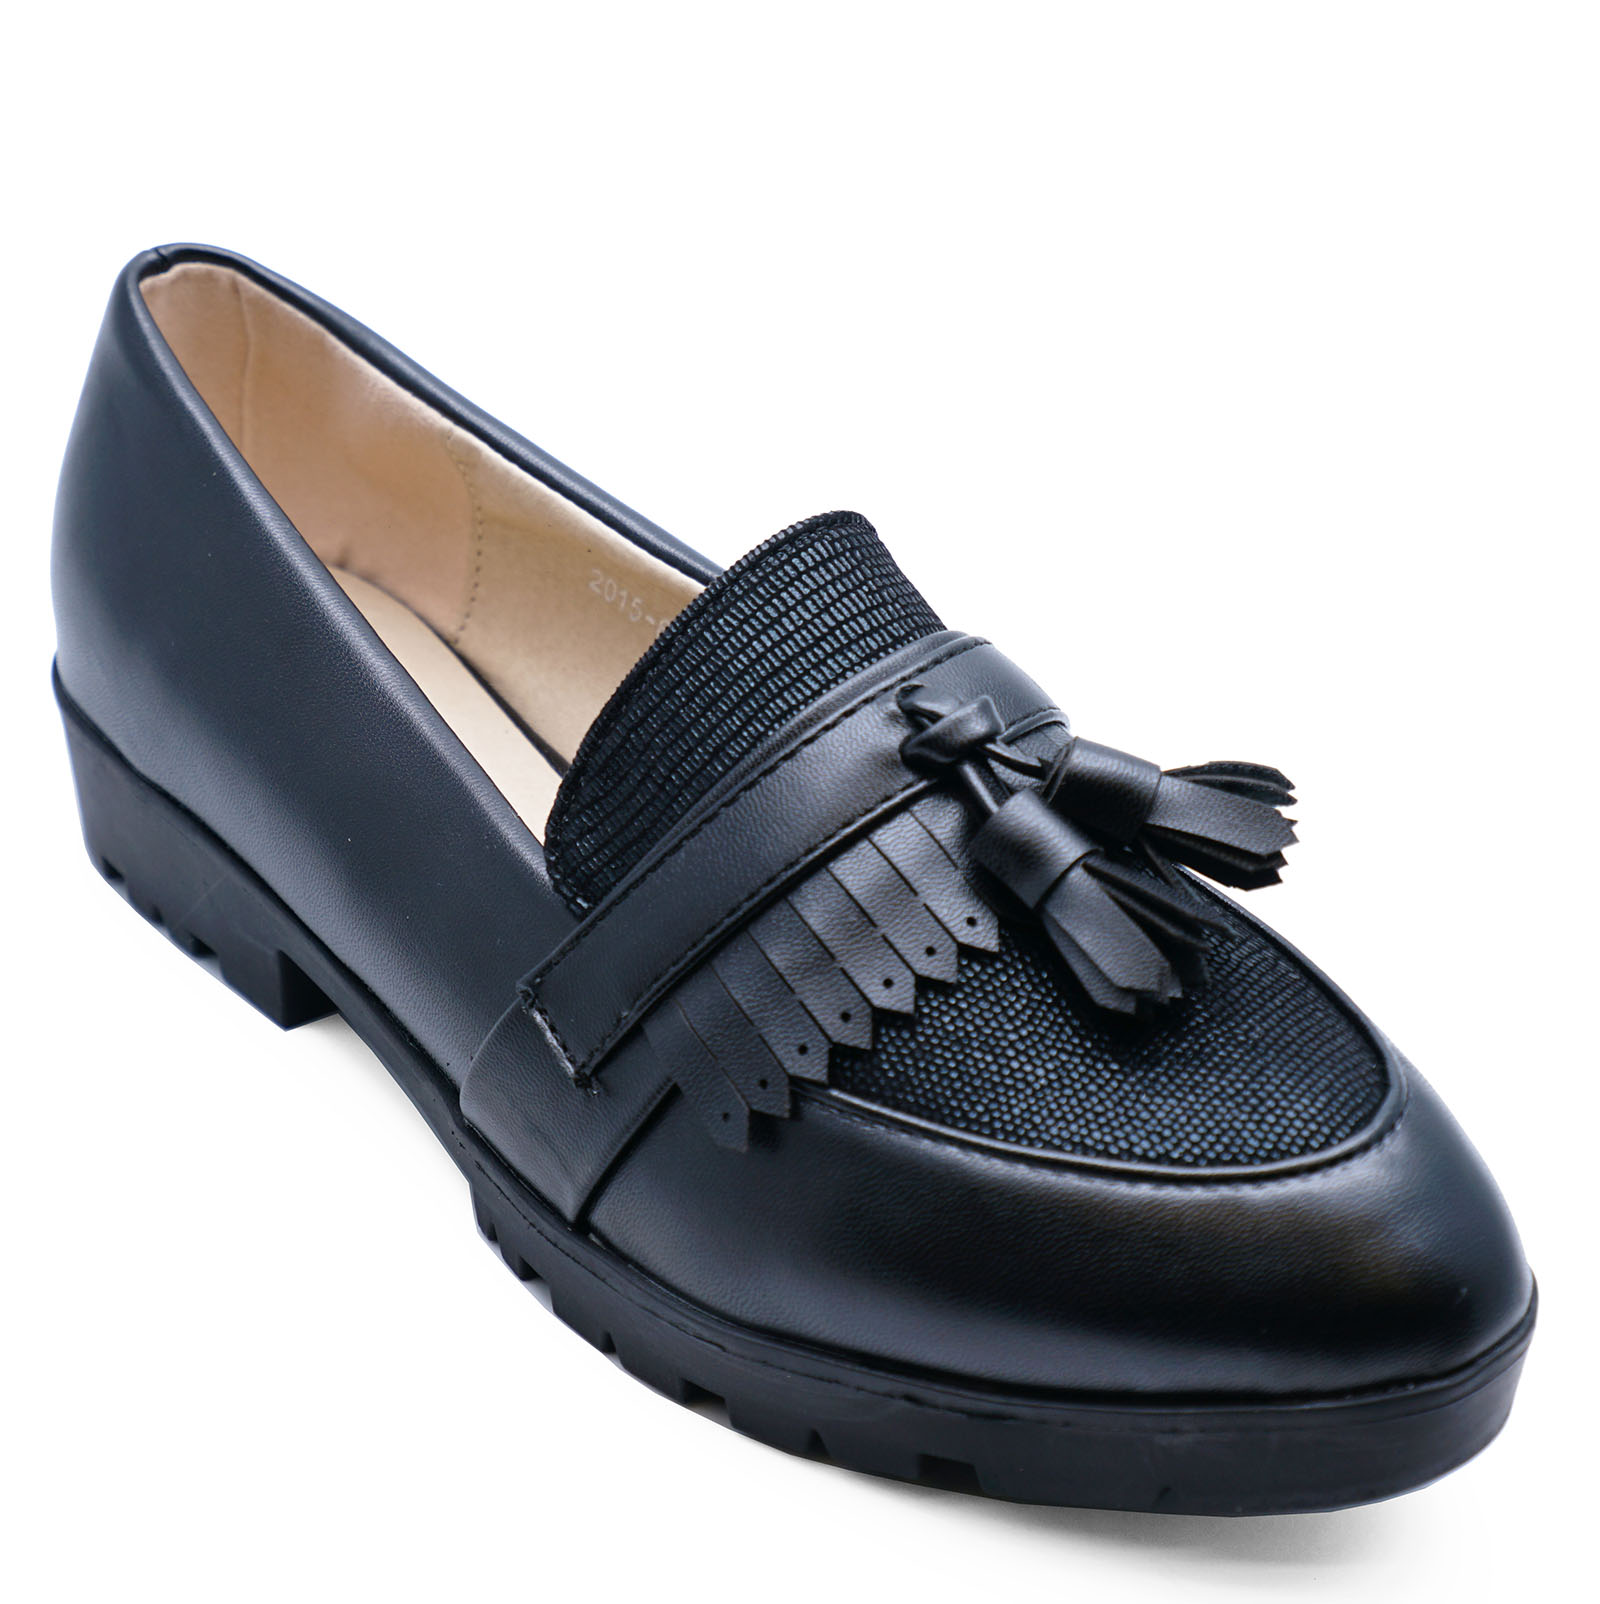 fab8cc5ed9e Sentinel WOMENS SMART BLACK COMFY CASUAL WORK SLIP-ON LOAFERS SHOES PUMPS  SIZES 3-8